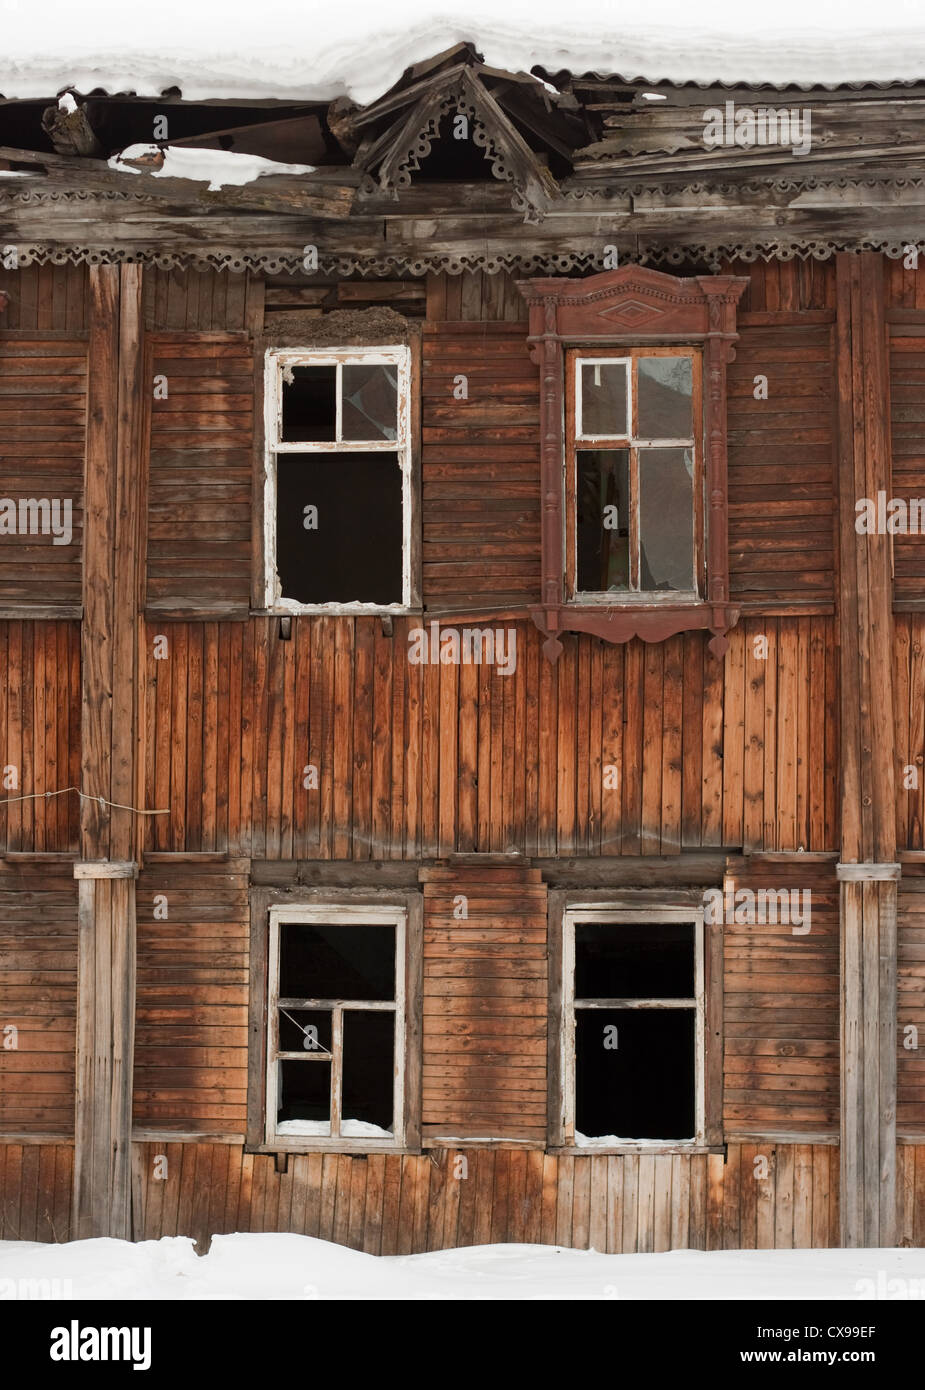 Old deserted building facade - Stock Image